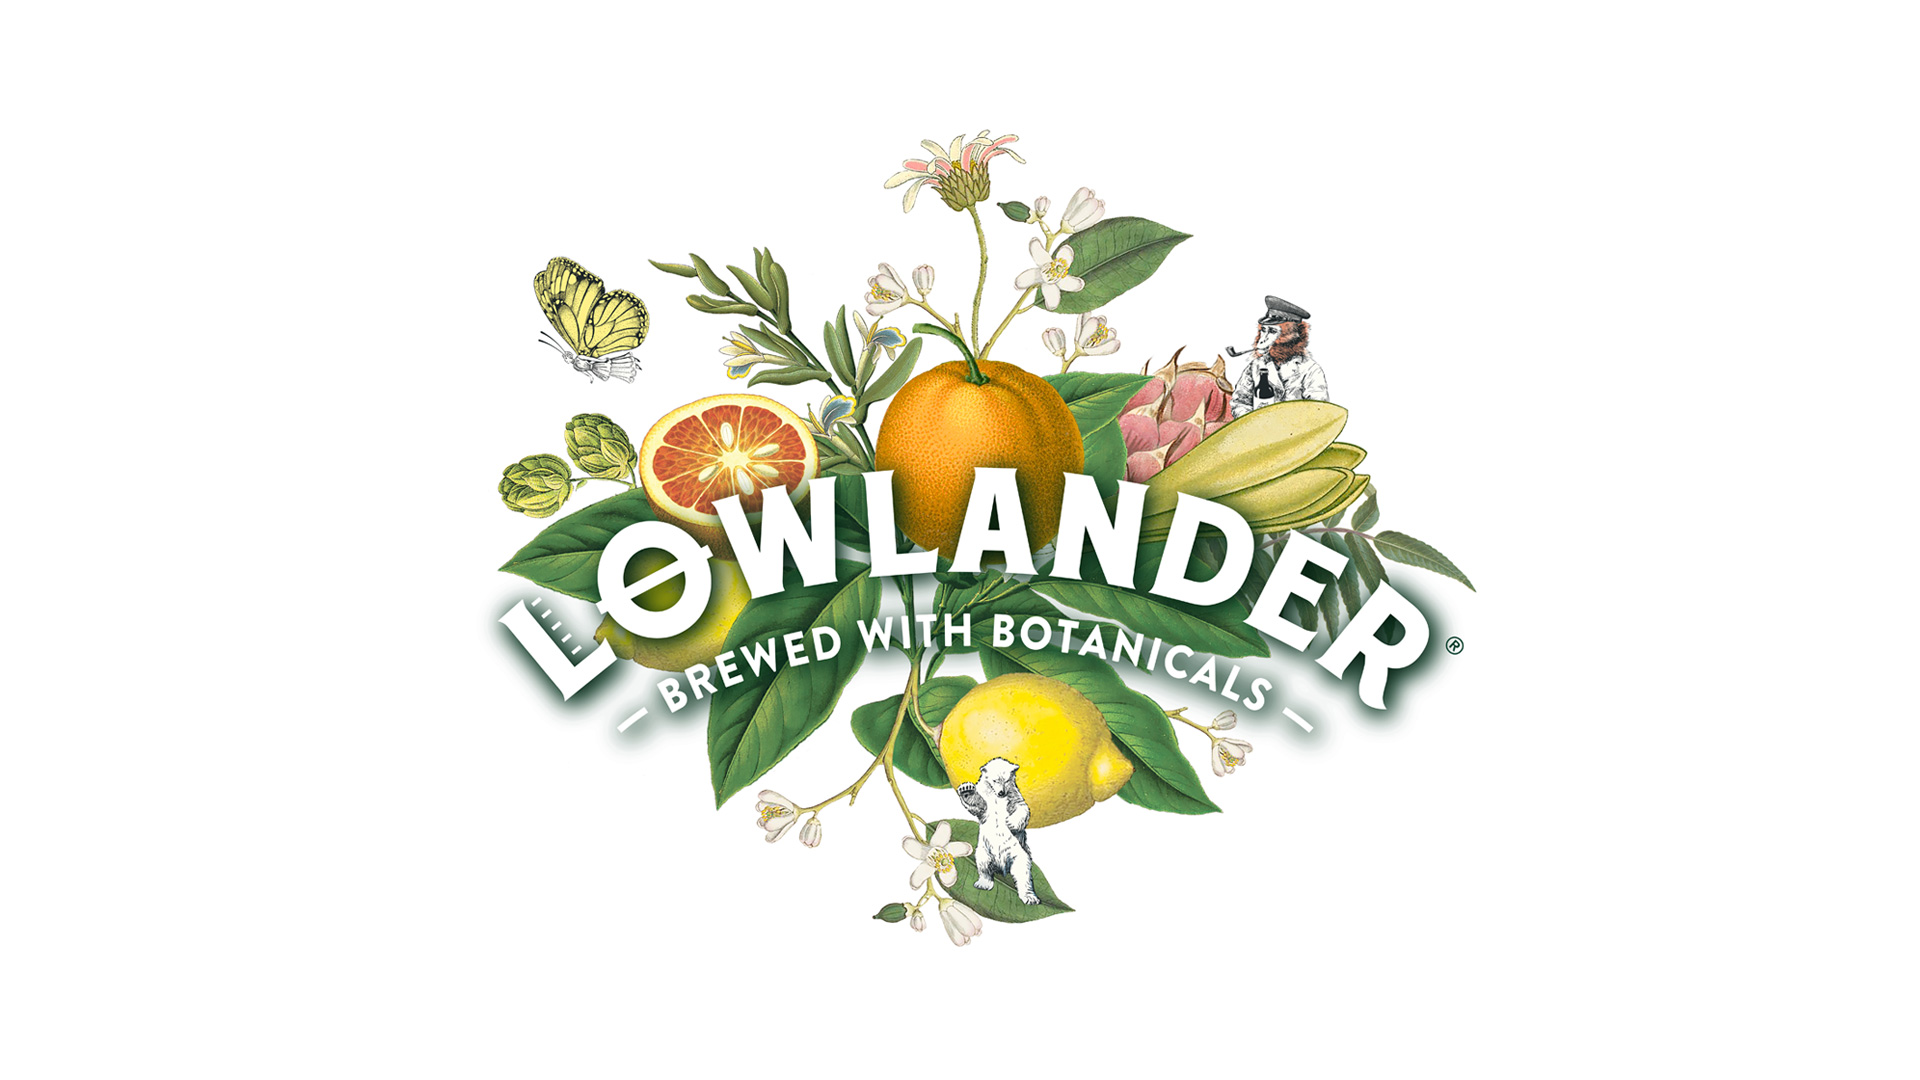 Lowlander Botanical Beer range designed and illustrated by Mutiny Agency, butterfly illustration, monkey illustration. Botanical fruit design.